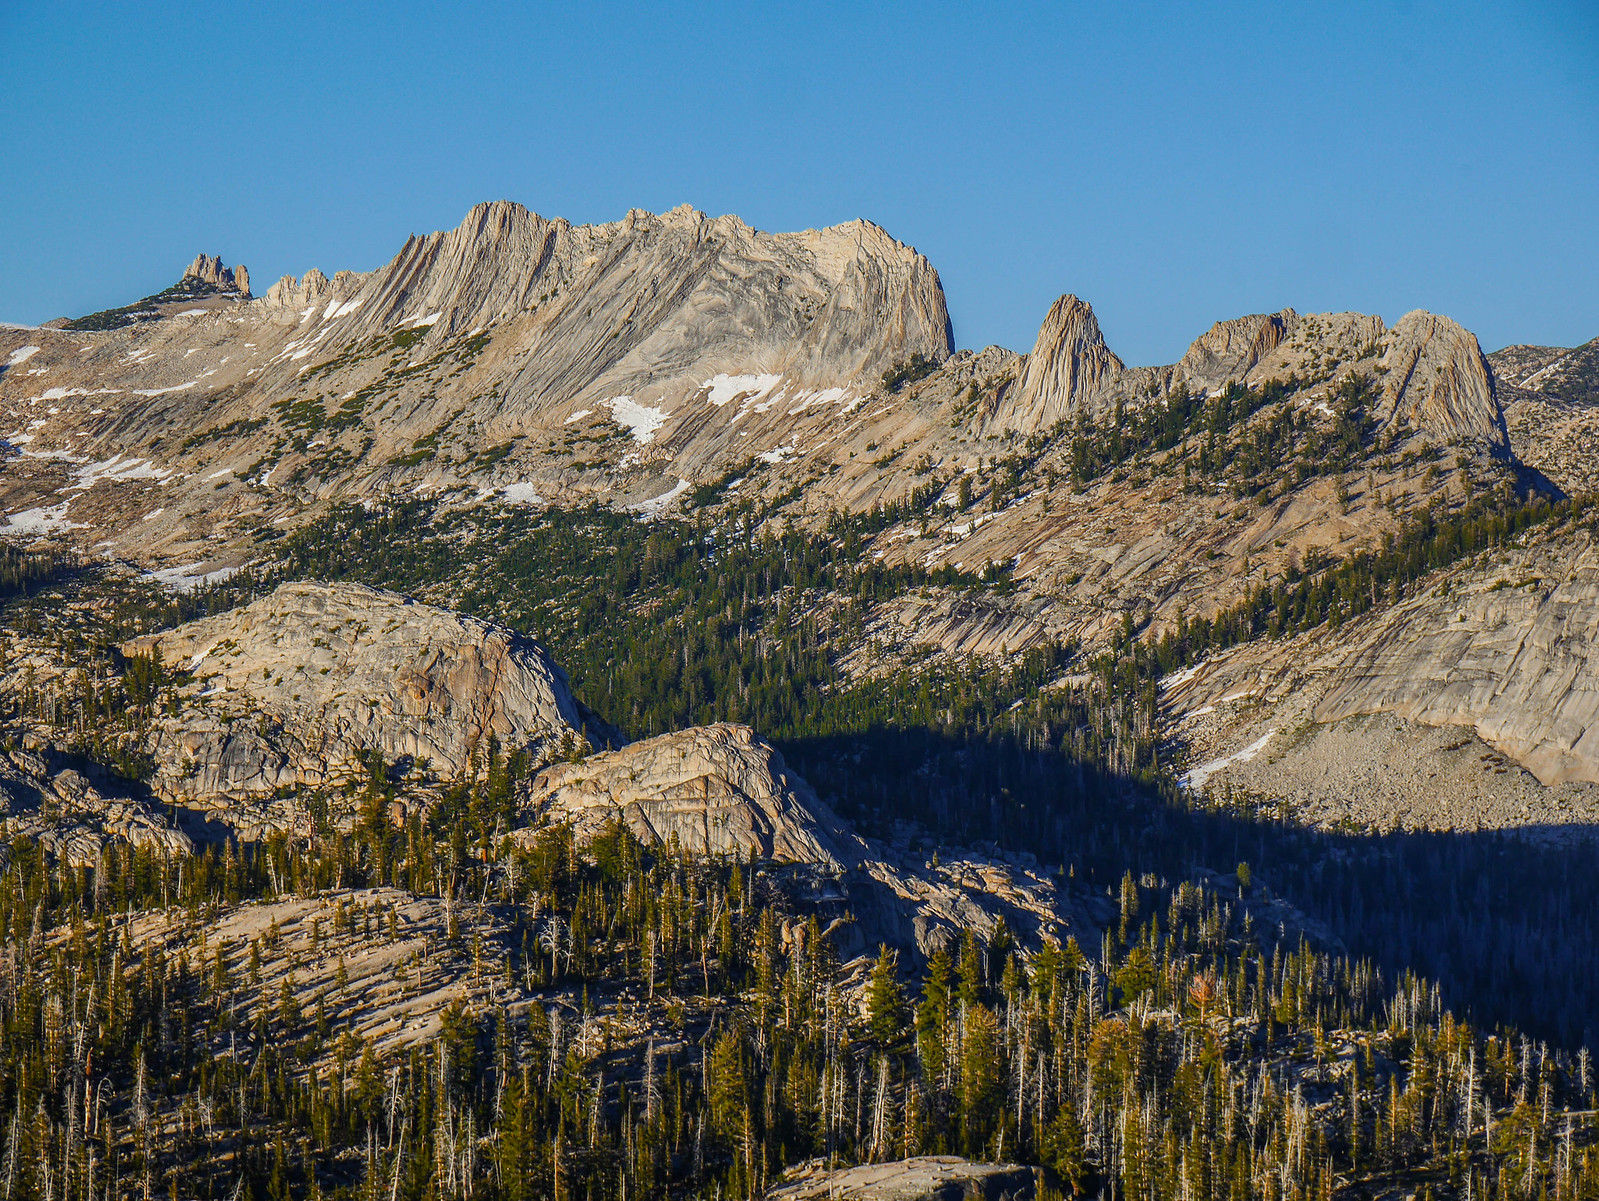 Cockscomb, Matthes Crest from Sunrise Peak